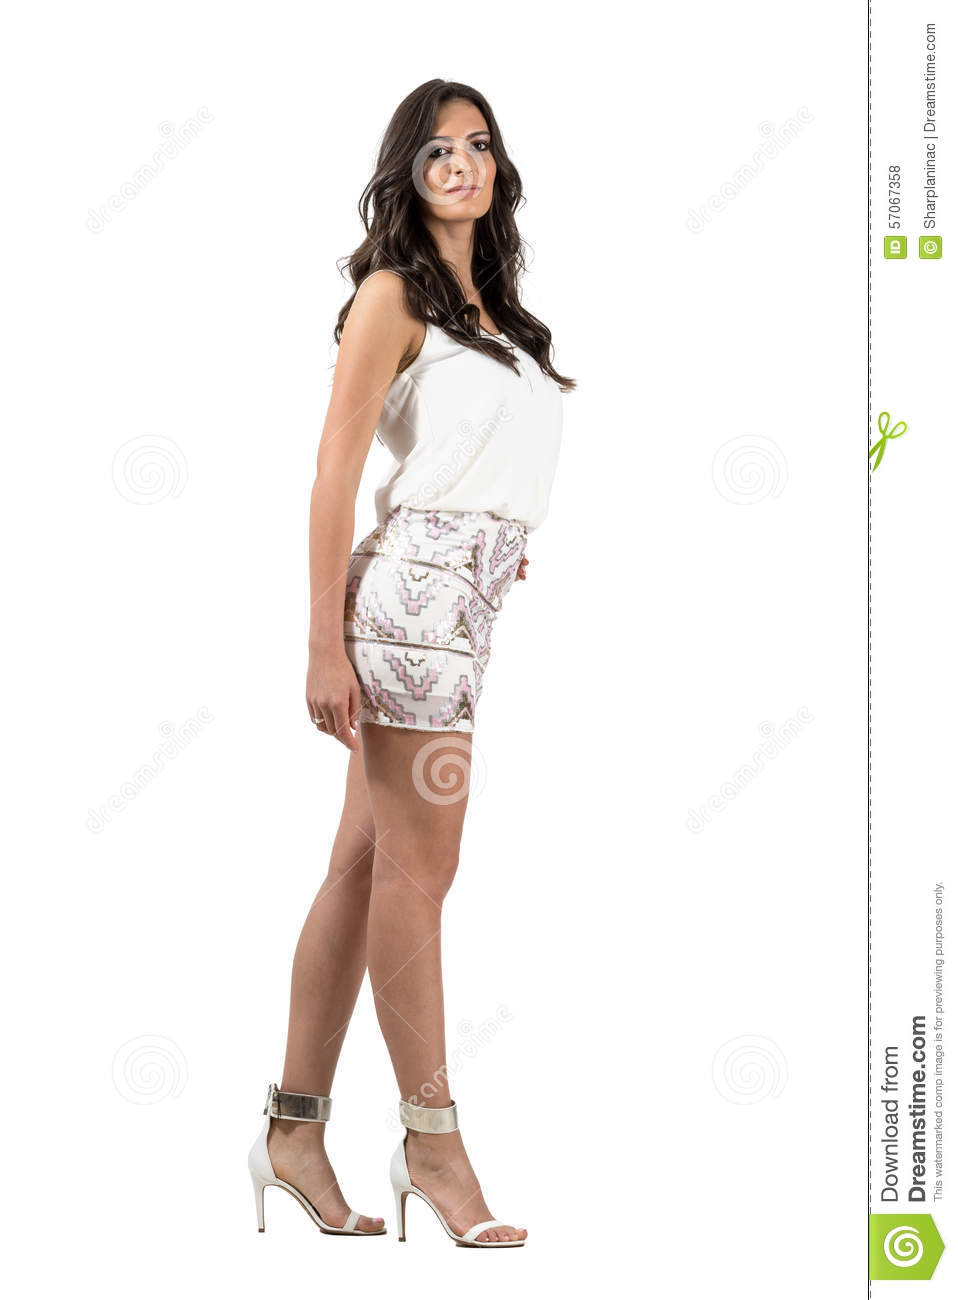 Glamour Vogue Hispanic Woman In Short Mini Skirt Posing ...